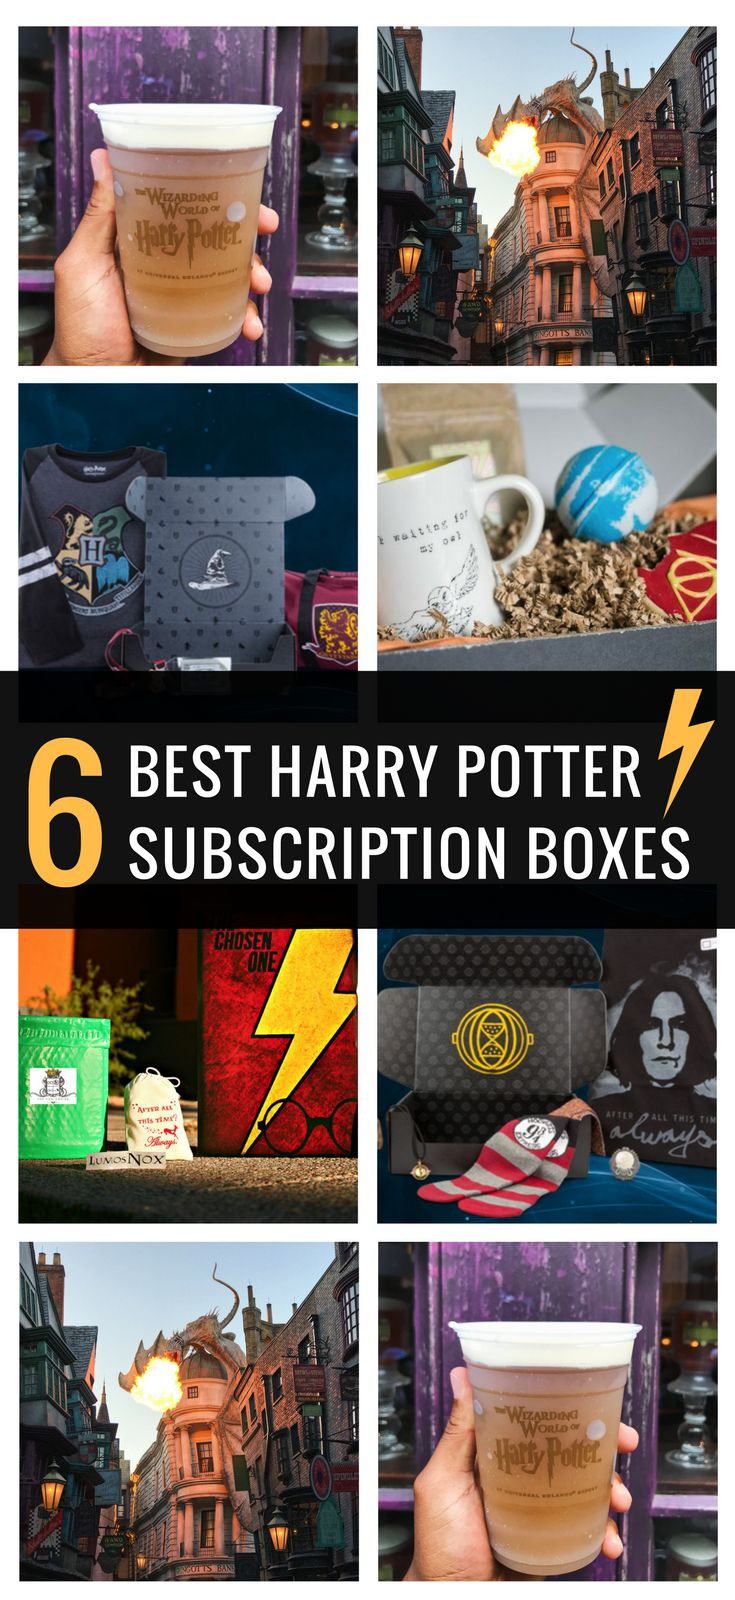 Best Harry Potter subscription boxes for Potterheads and true fans!